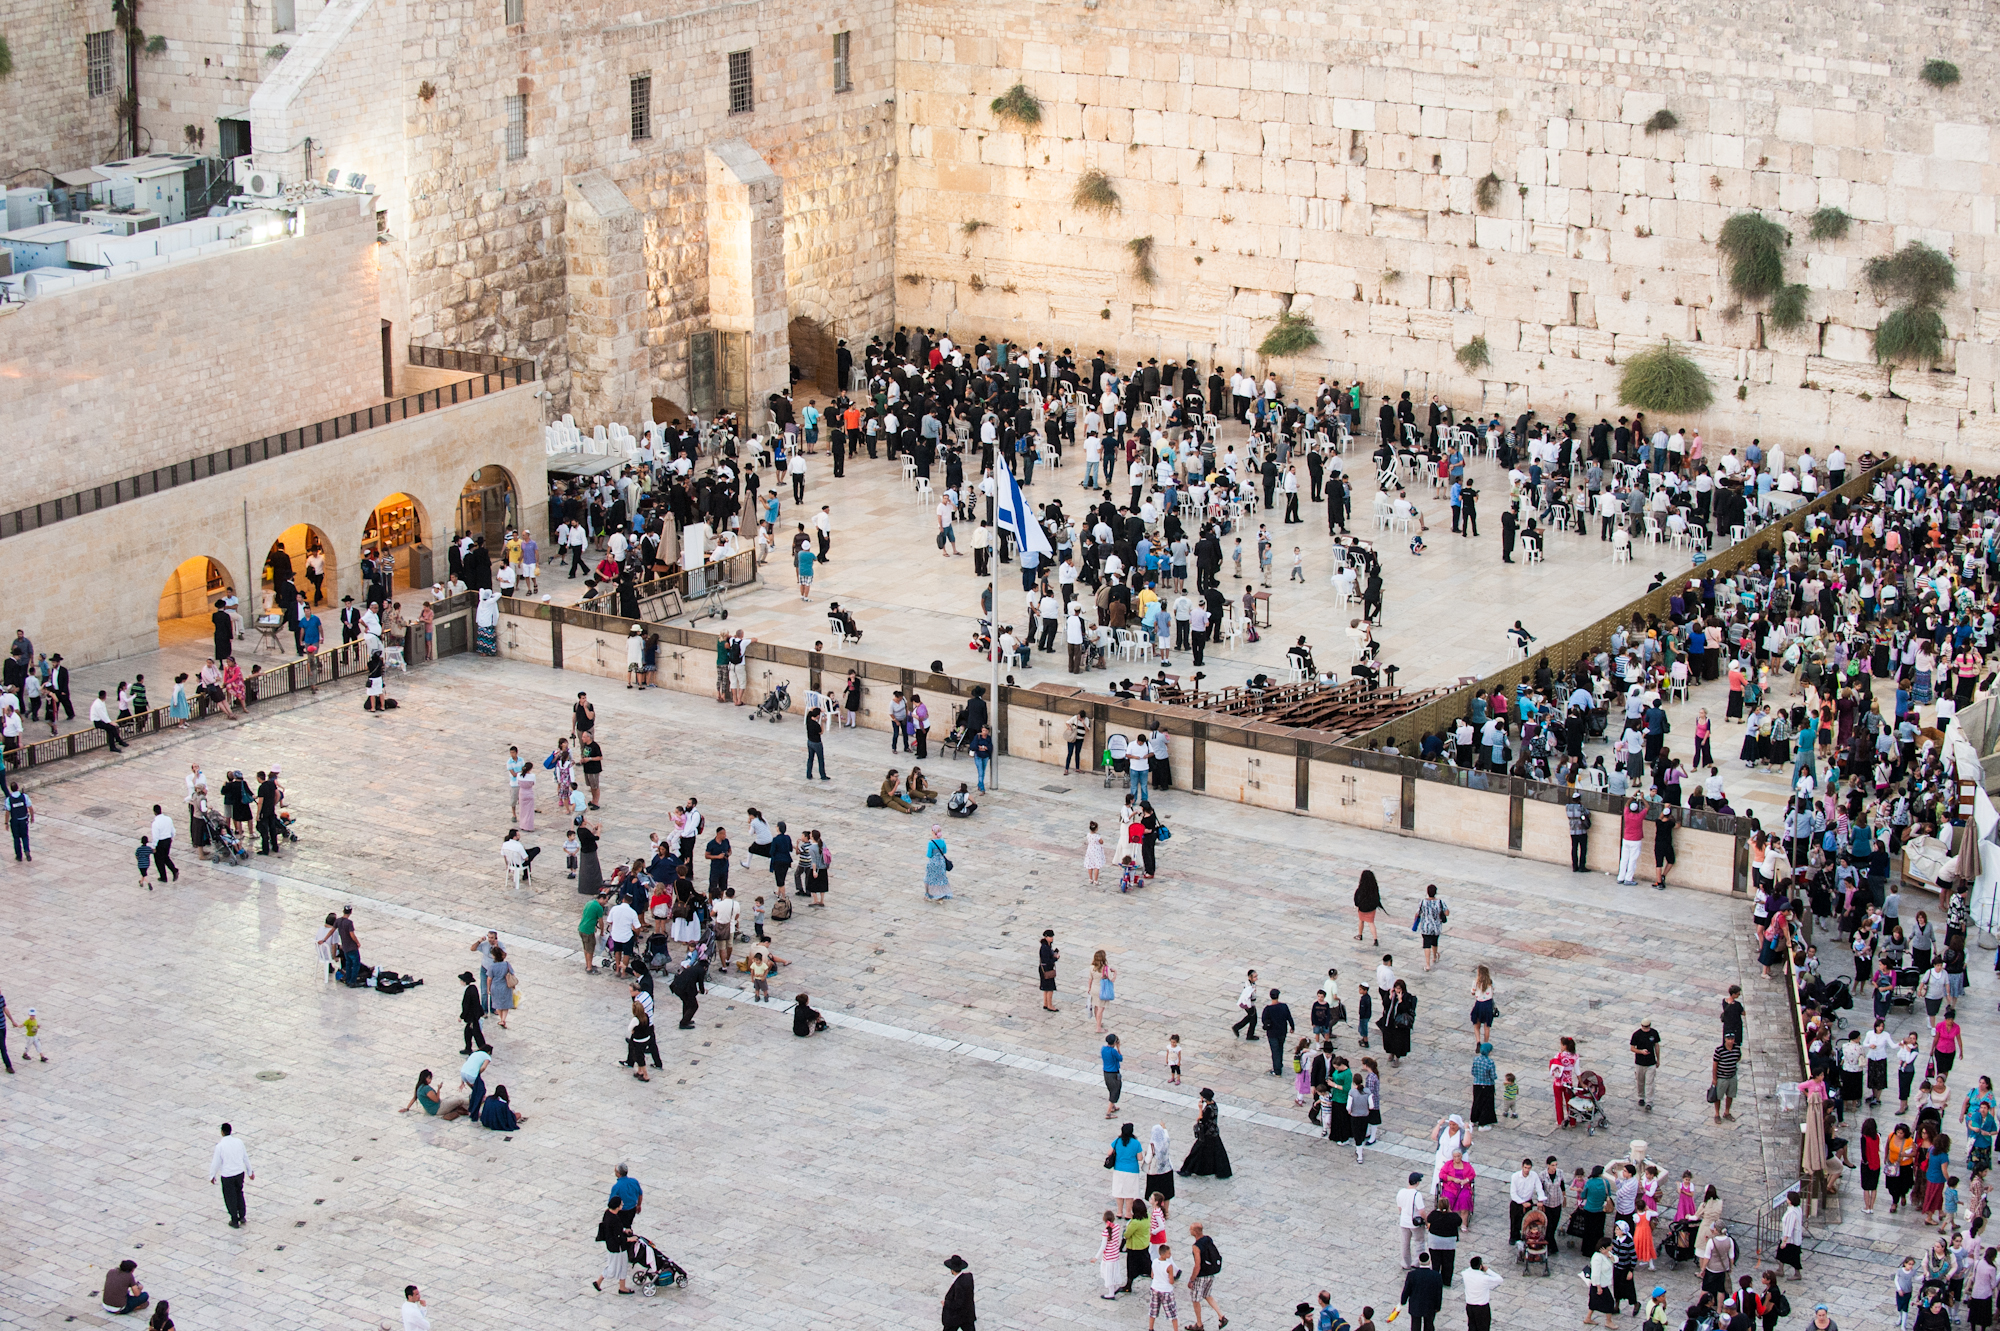 Worshipers at the Western Wall